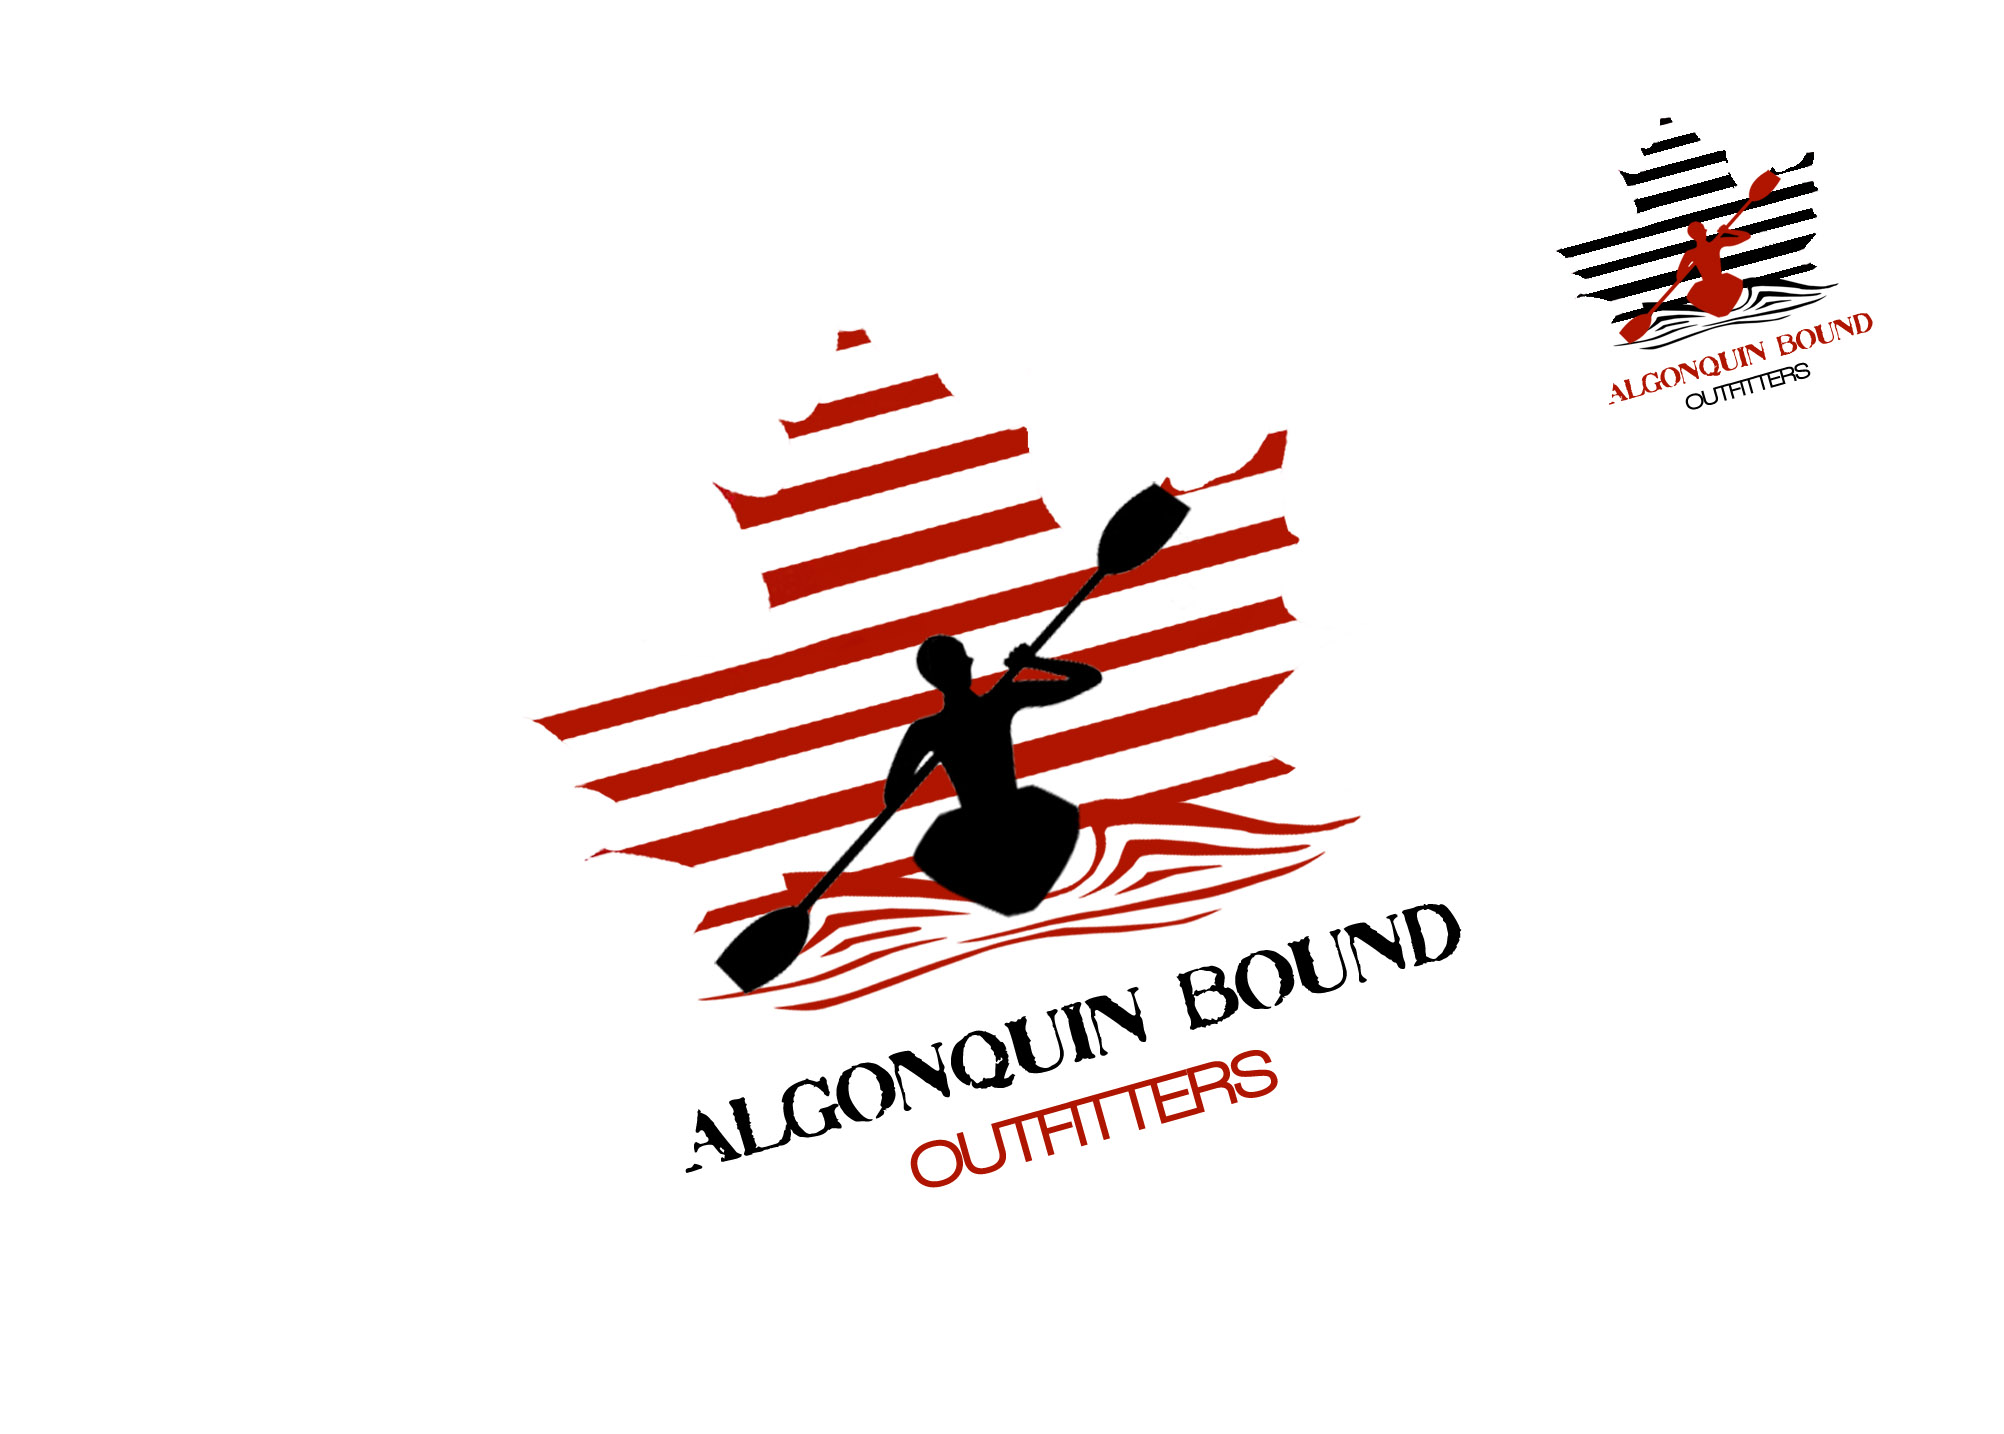 Logo Design by Lama Creative - Entry No. 79 in the Logo Design Contest Captivating Logo Design for Algonquin Bound Outfitters.